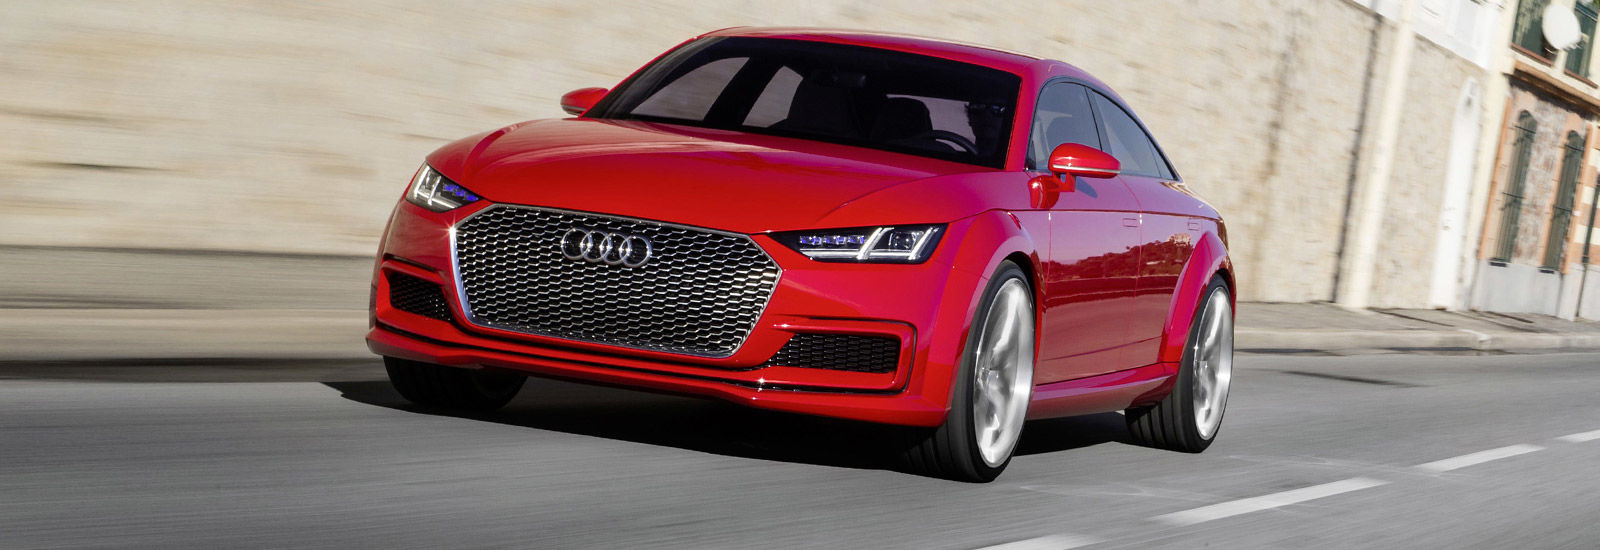 Audi A Coupe Price Specs And Release Date Carwow - Audi s3 coupe